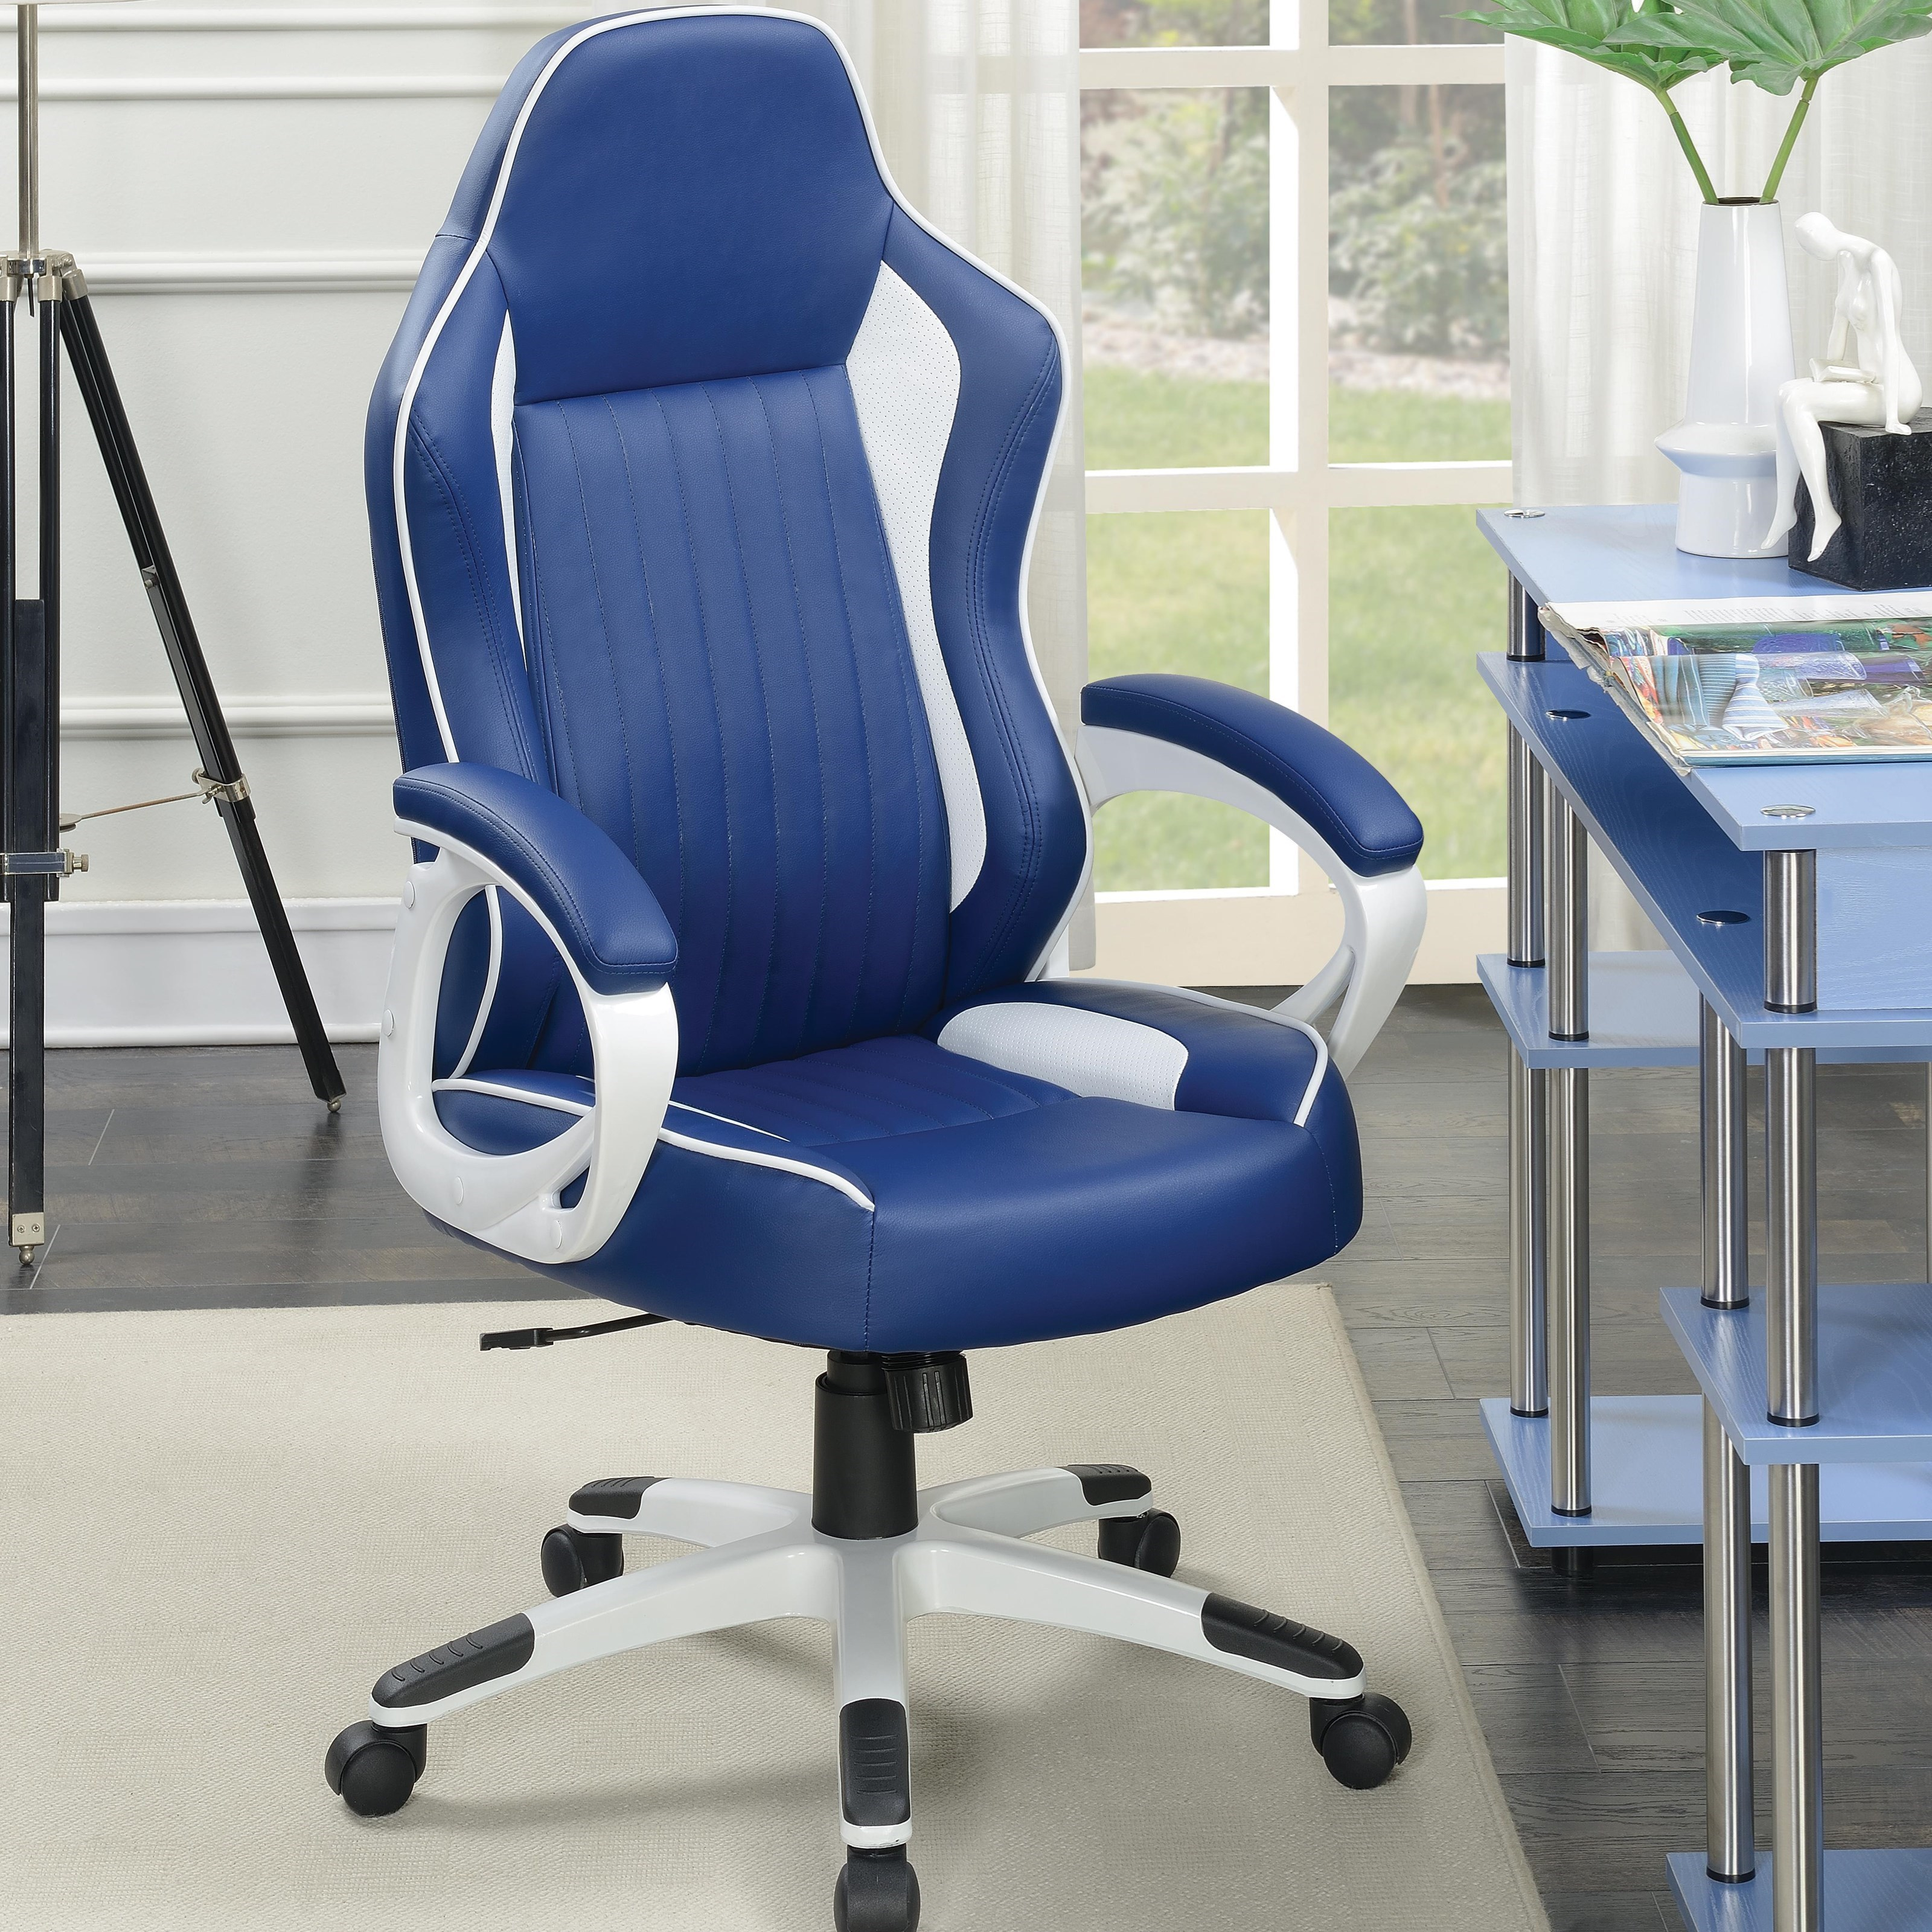 Coaster fice Chairs puter Chair with Blue Faux Upholstery